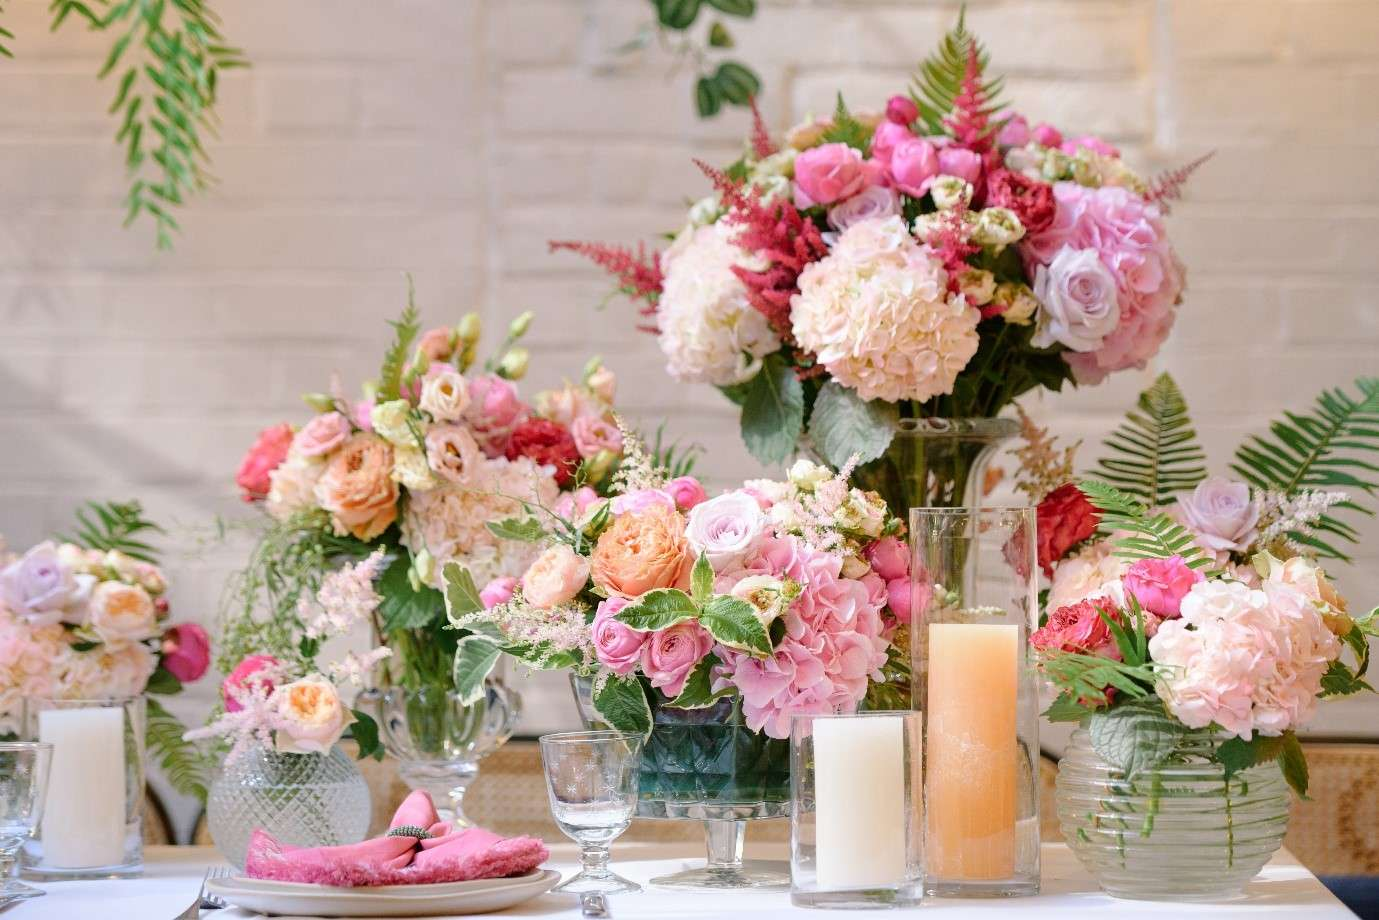 FLOWER DELIVERY SERVICE IN UK